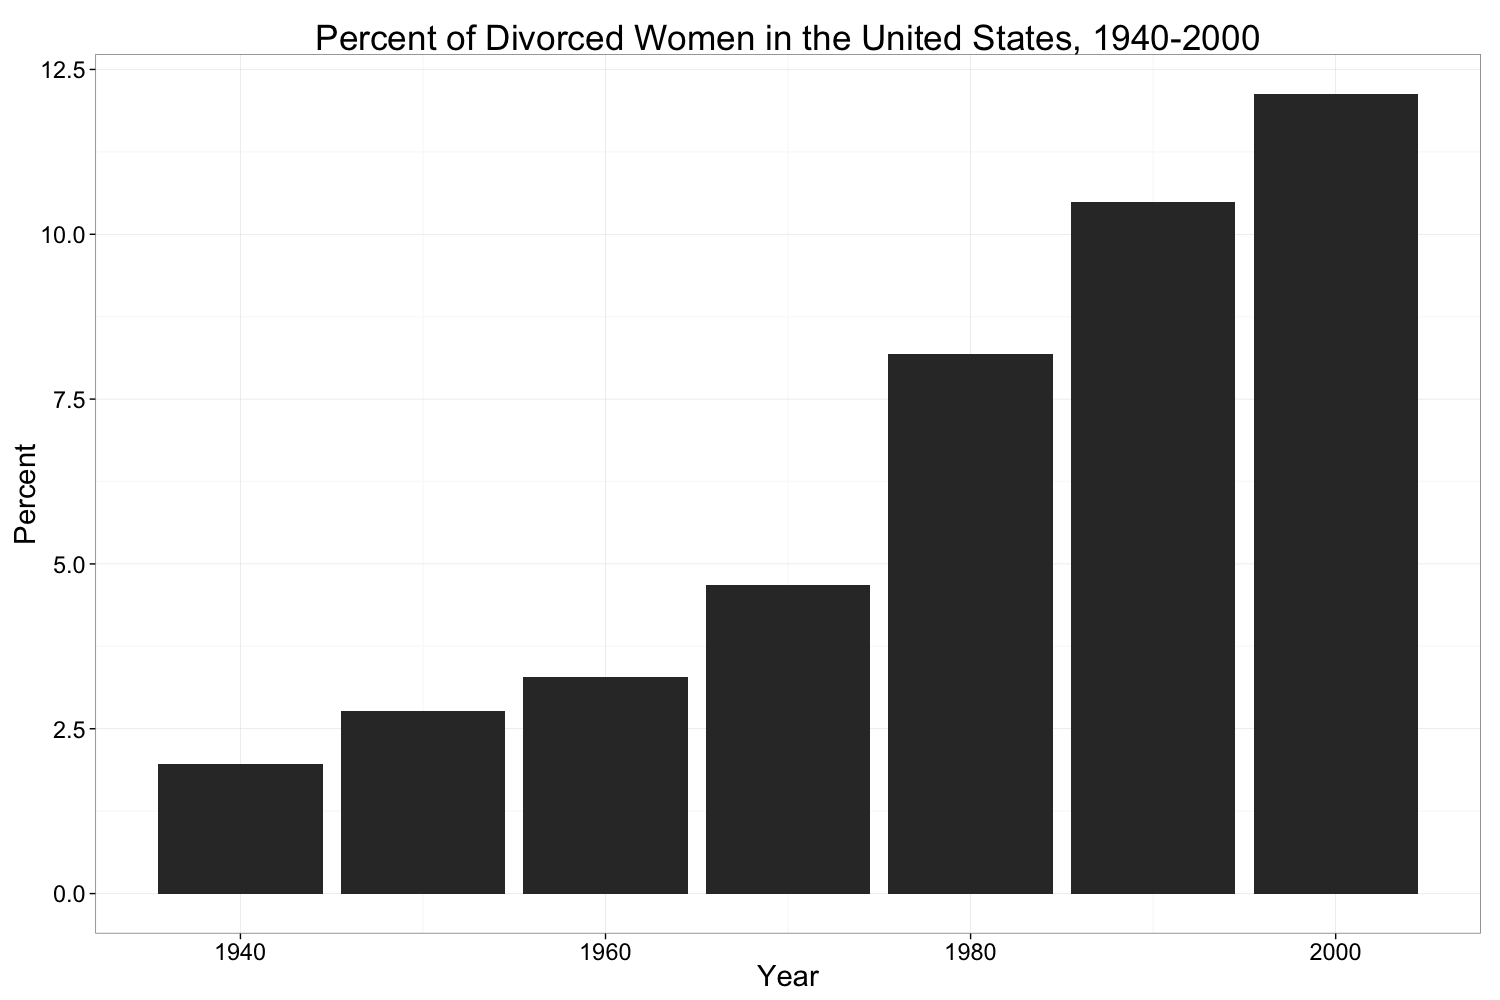 Figure 10 - Percent of Divorced Women in the United States, 1940-2000